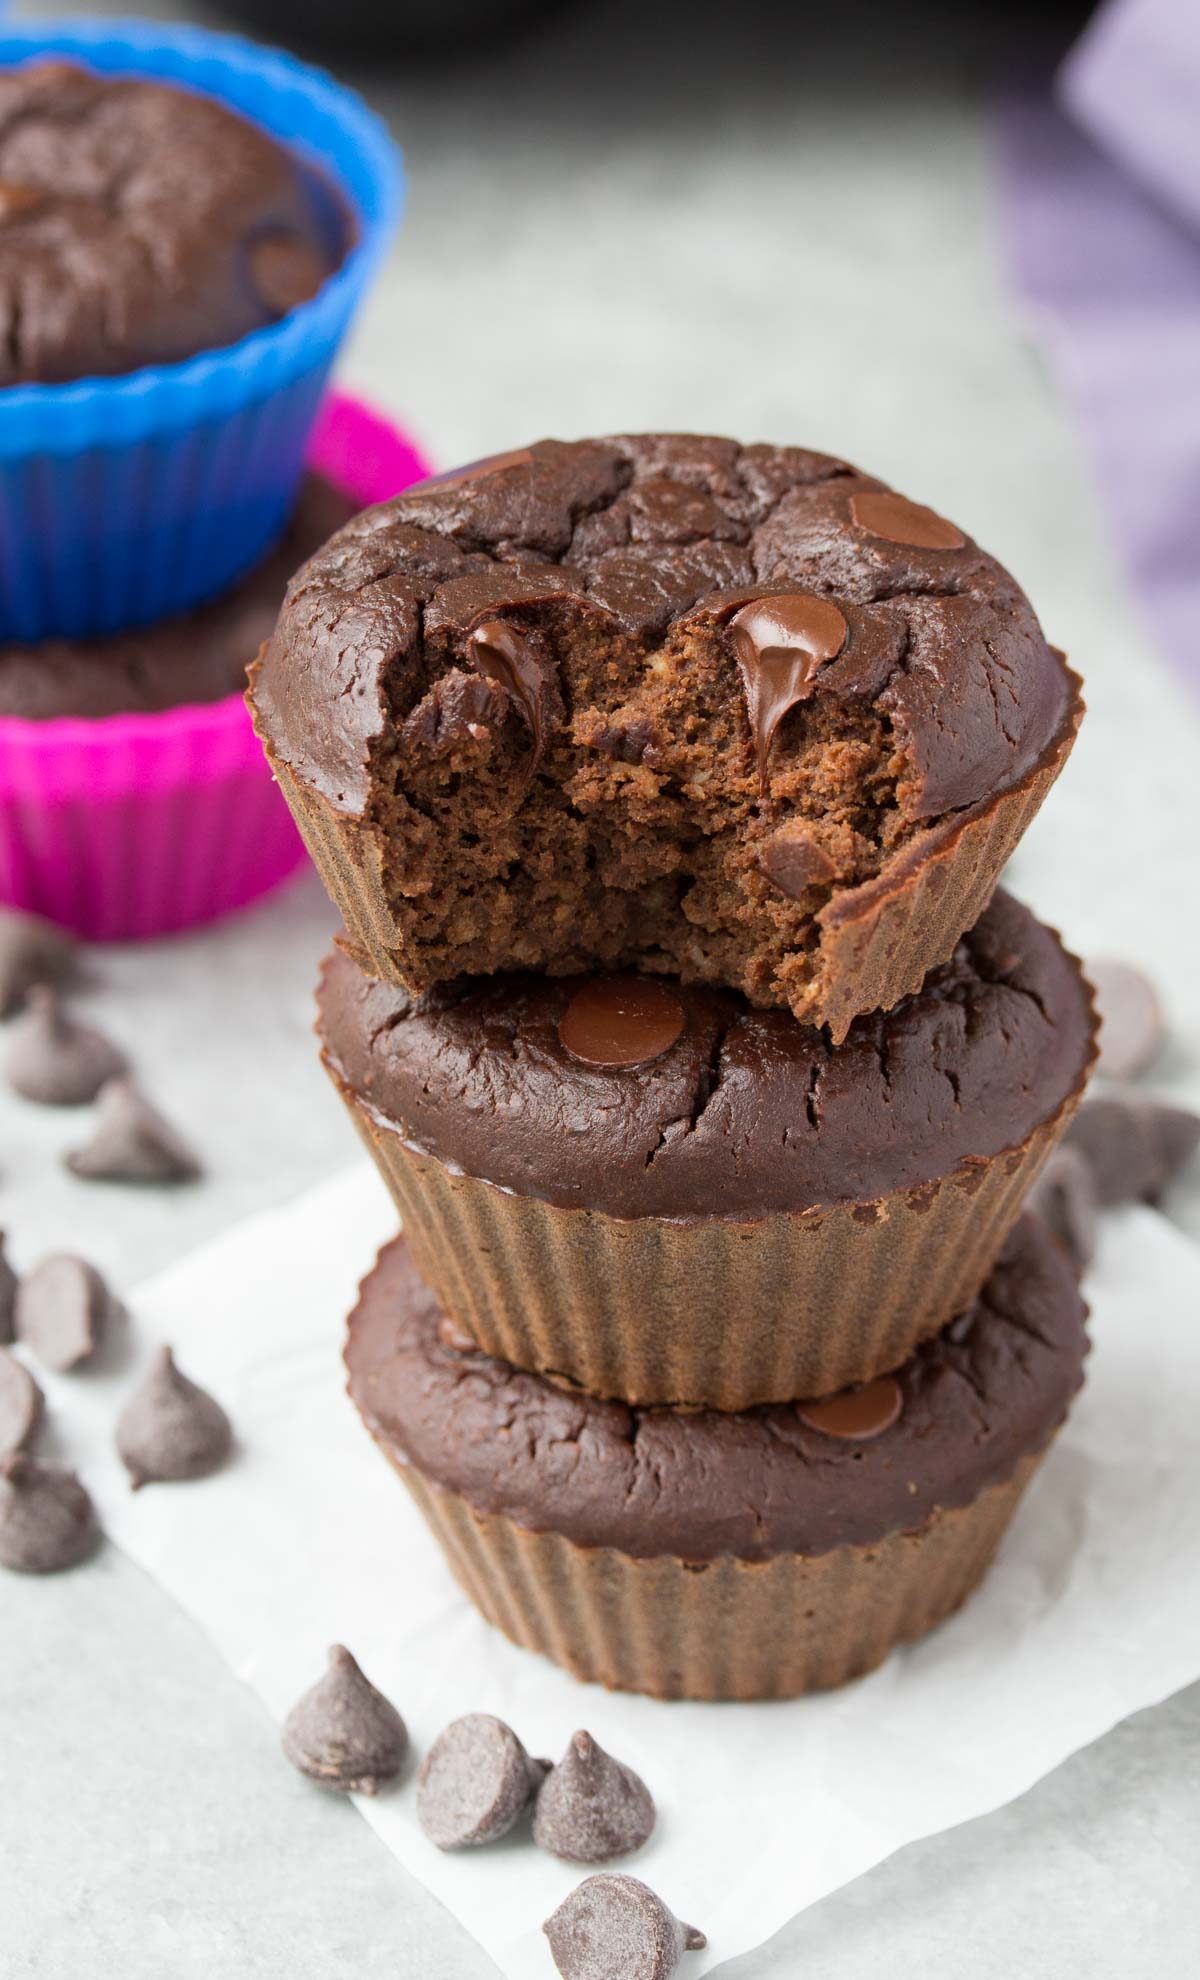 Chocolate Black Bean Blender Muffins, three muffins stacked on top of each other.